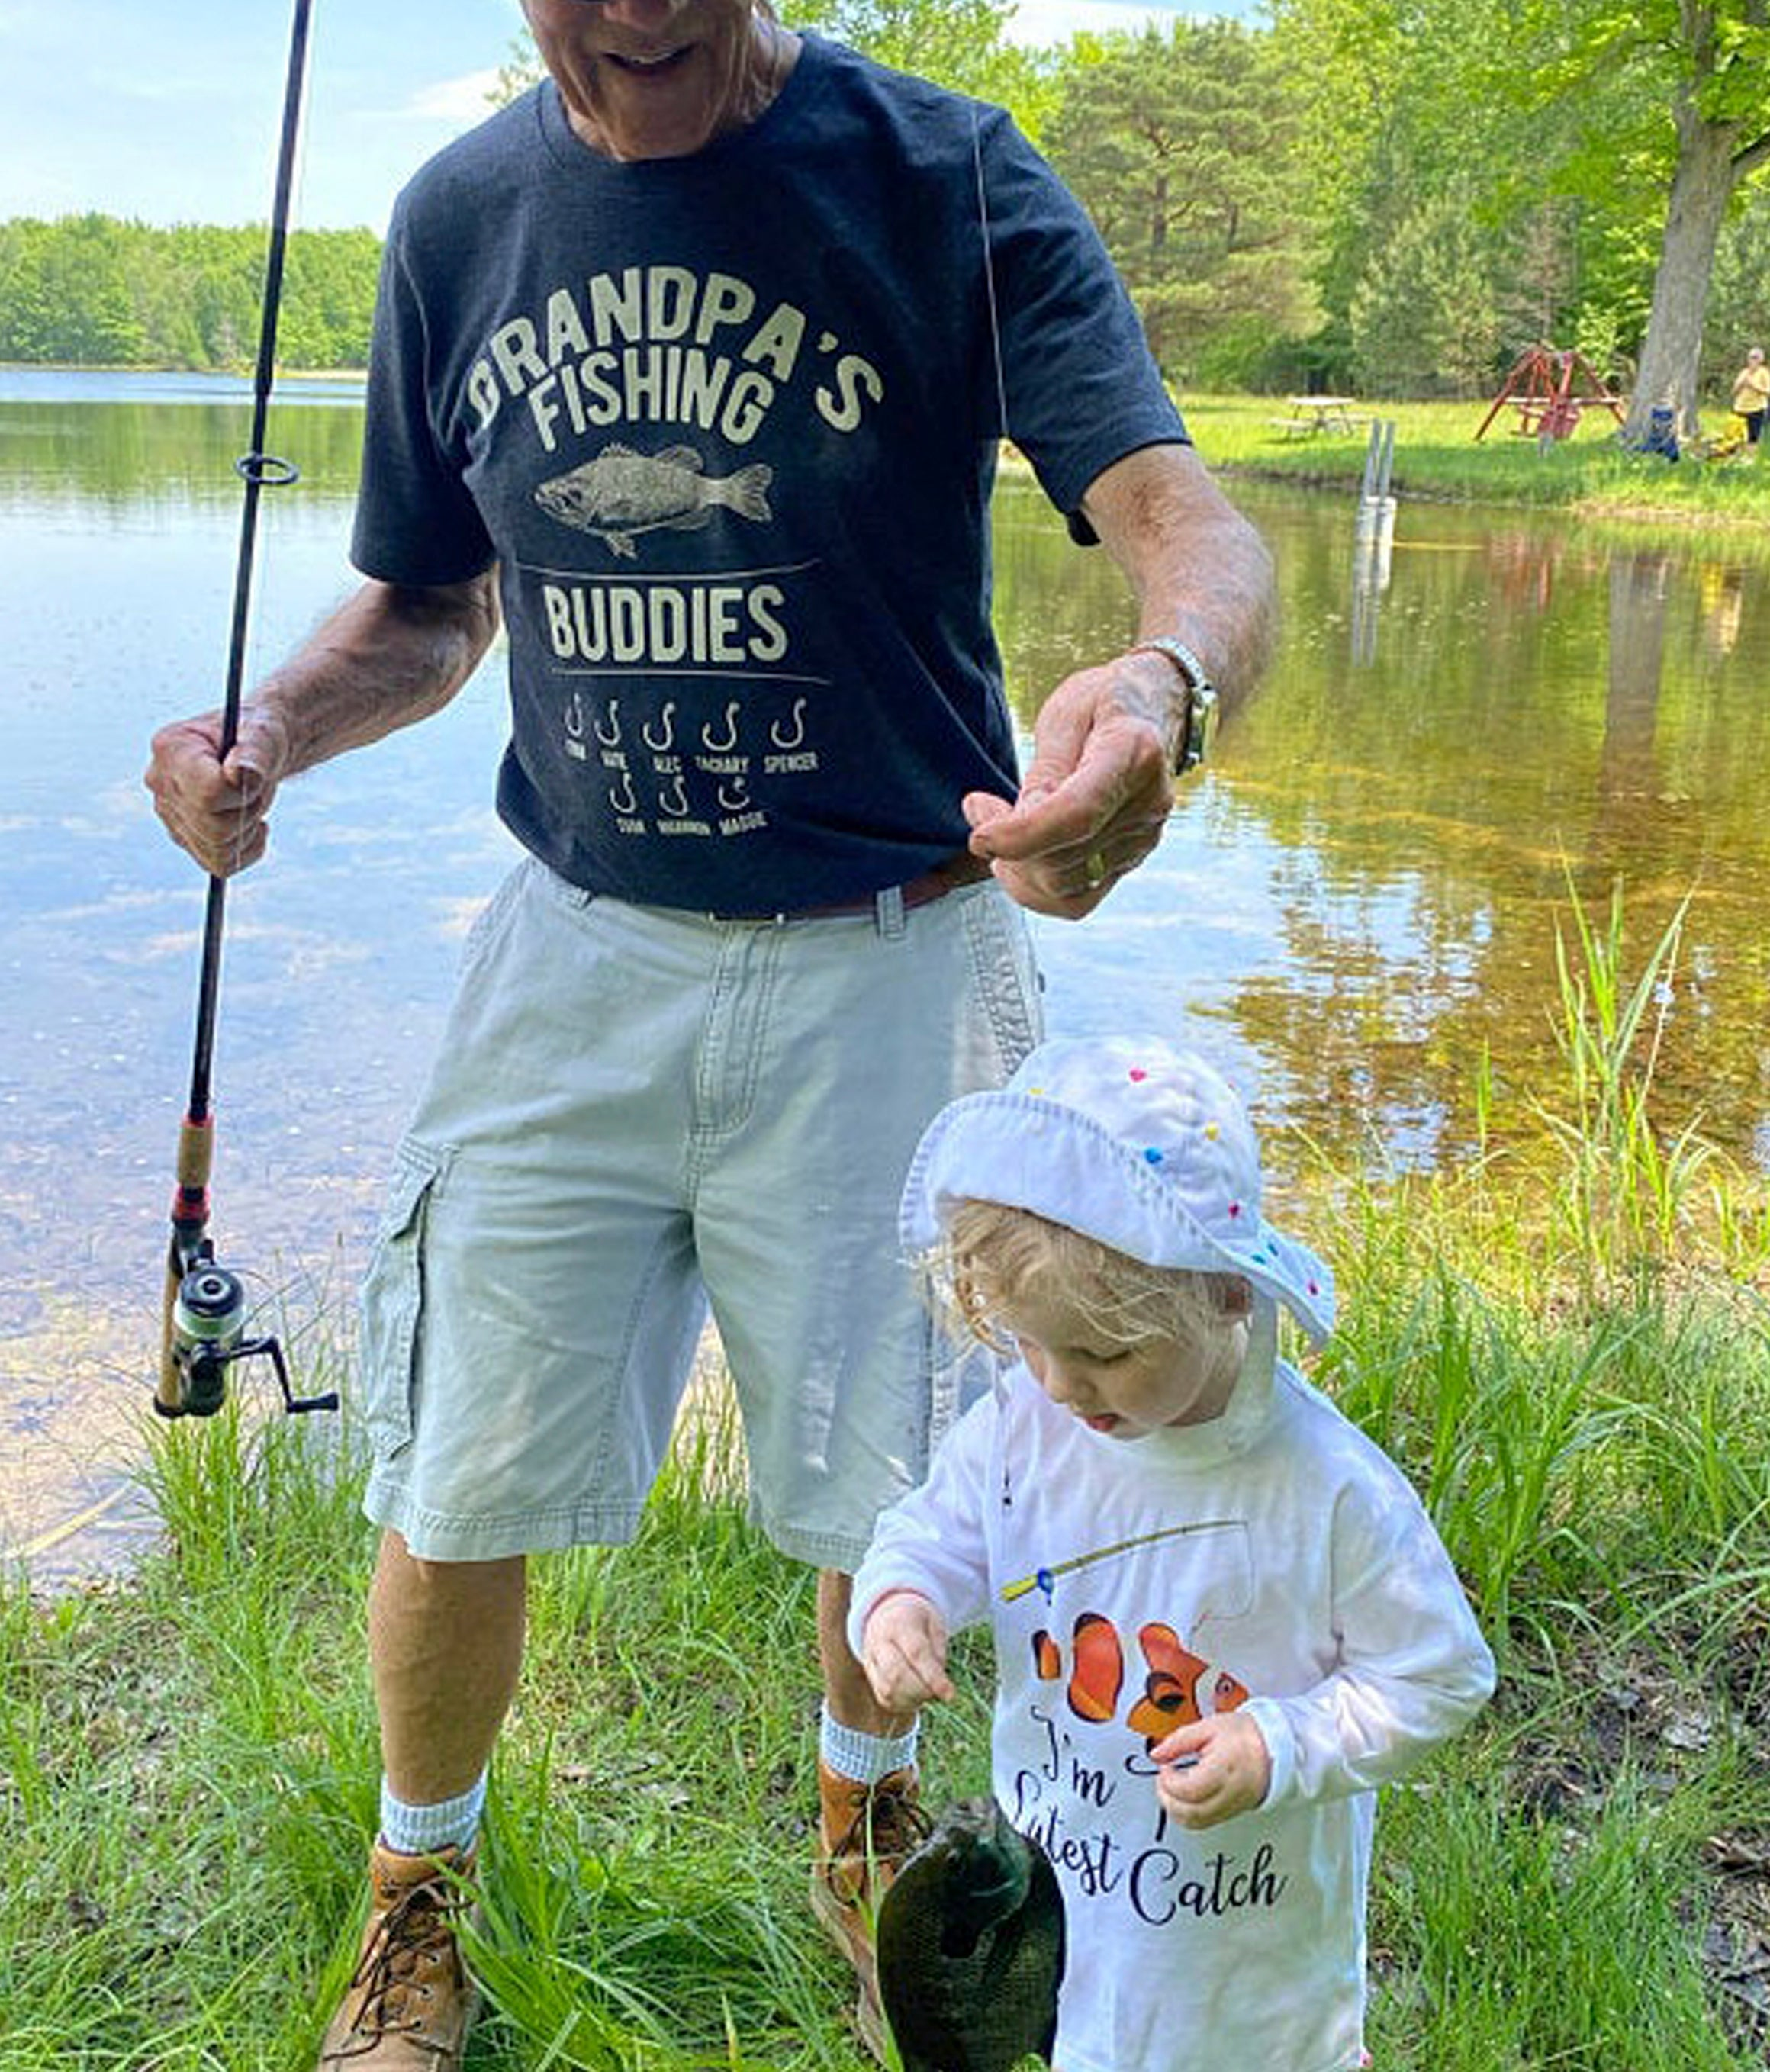 photo of grandpa wearing Grandpa's Fishing Buddies t-shirt